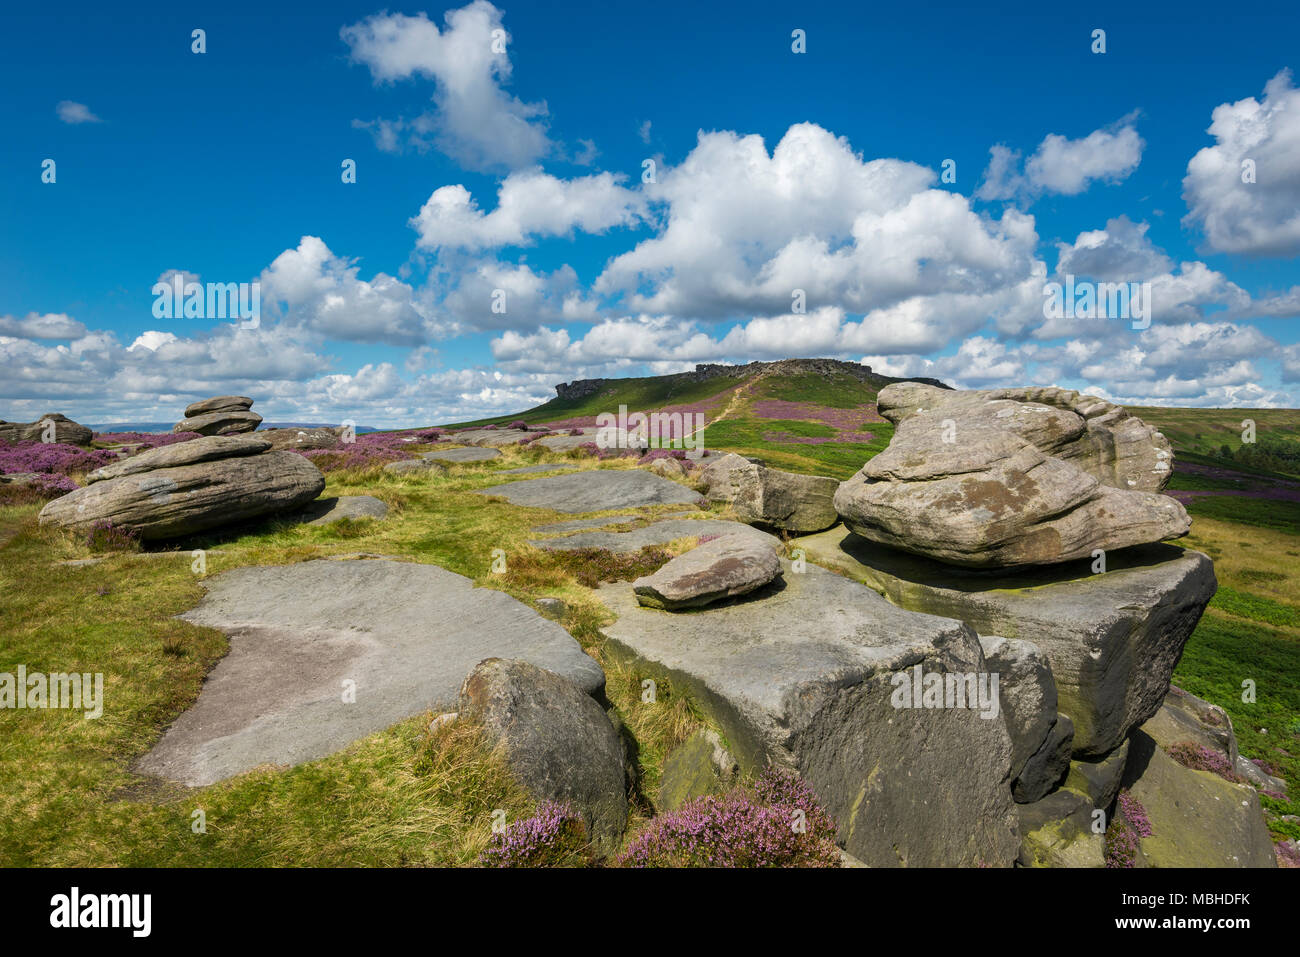 Higger Tor viewed from Carl Wark near Hathersage in the Peak District national park, Derbyshire, England. Summer day with heather in full bloom. - Stock Image